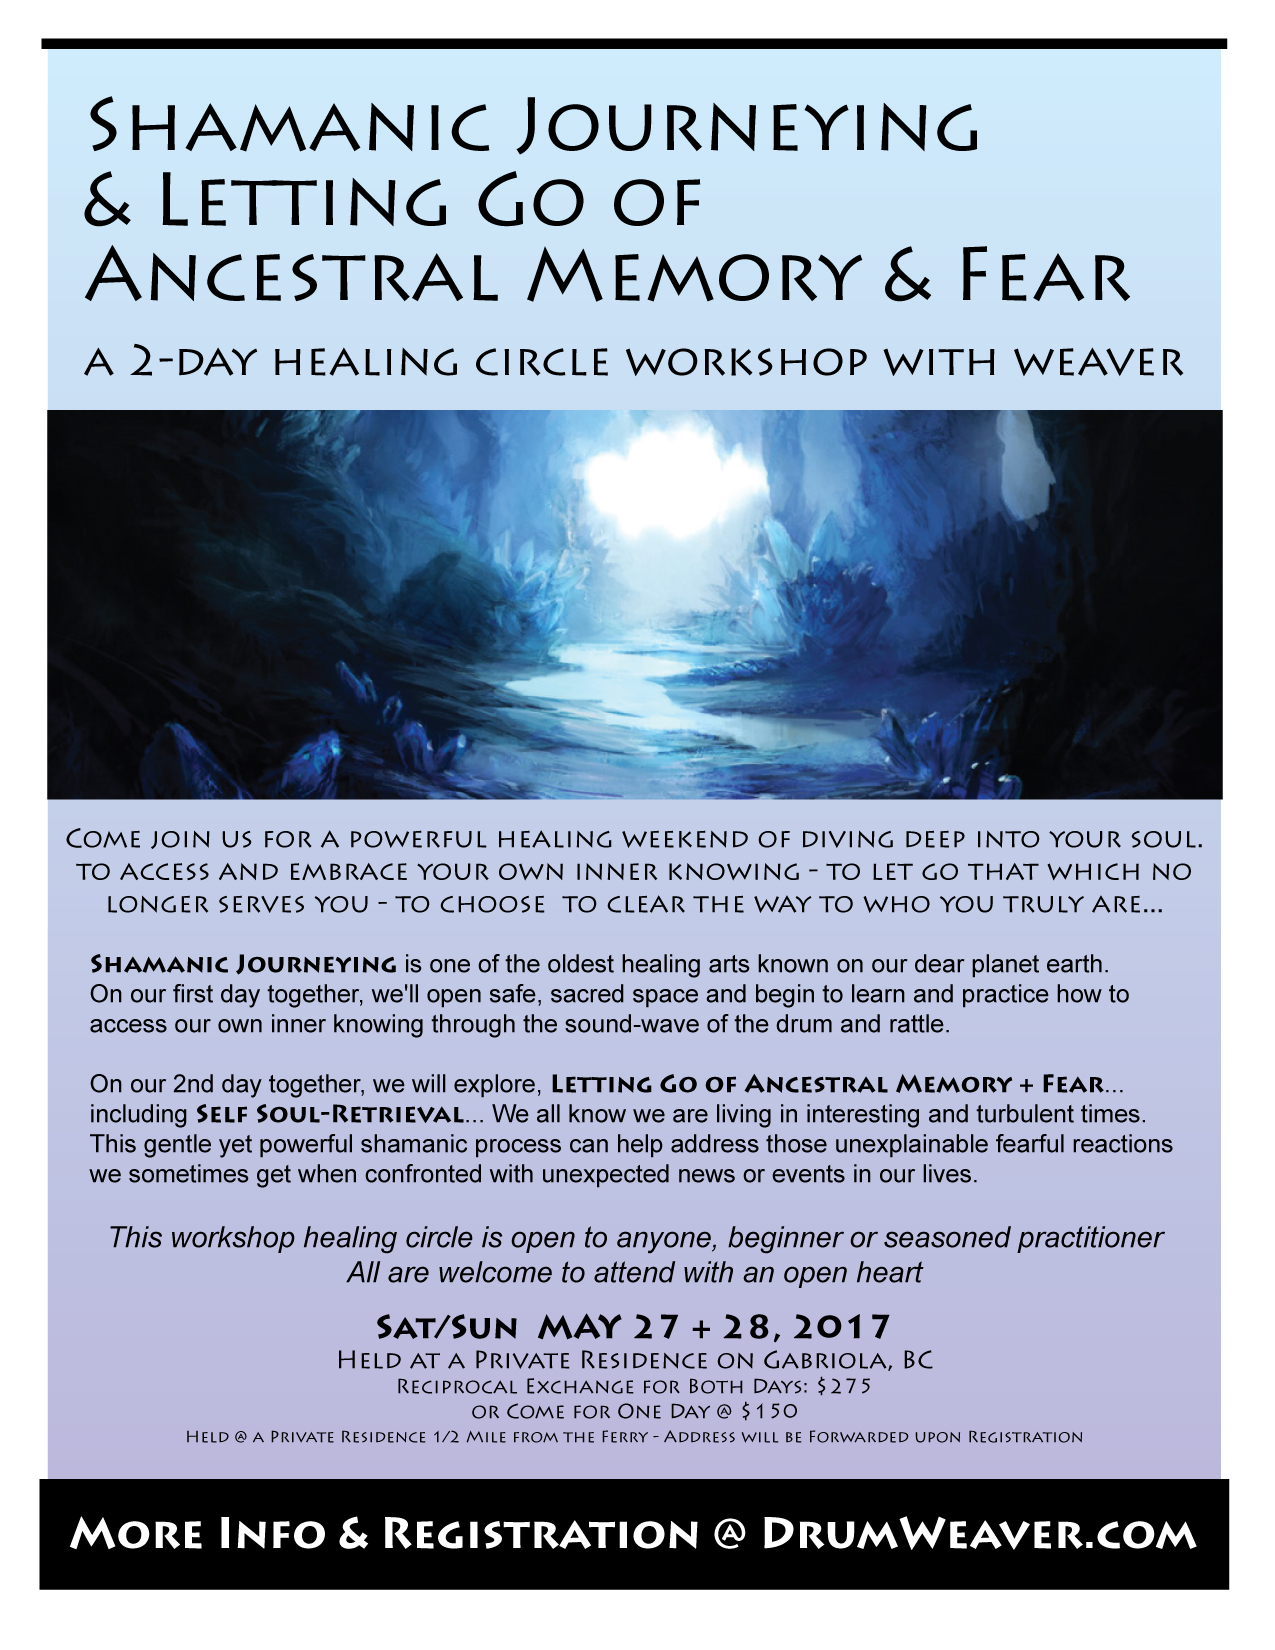 Shamanic Journeying + Letting Go Ancestral Memory + Fear